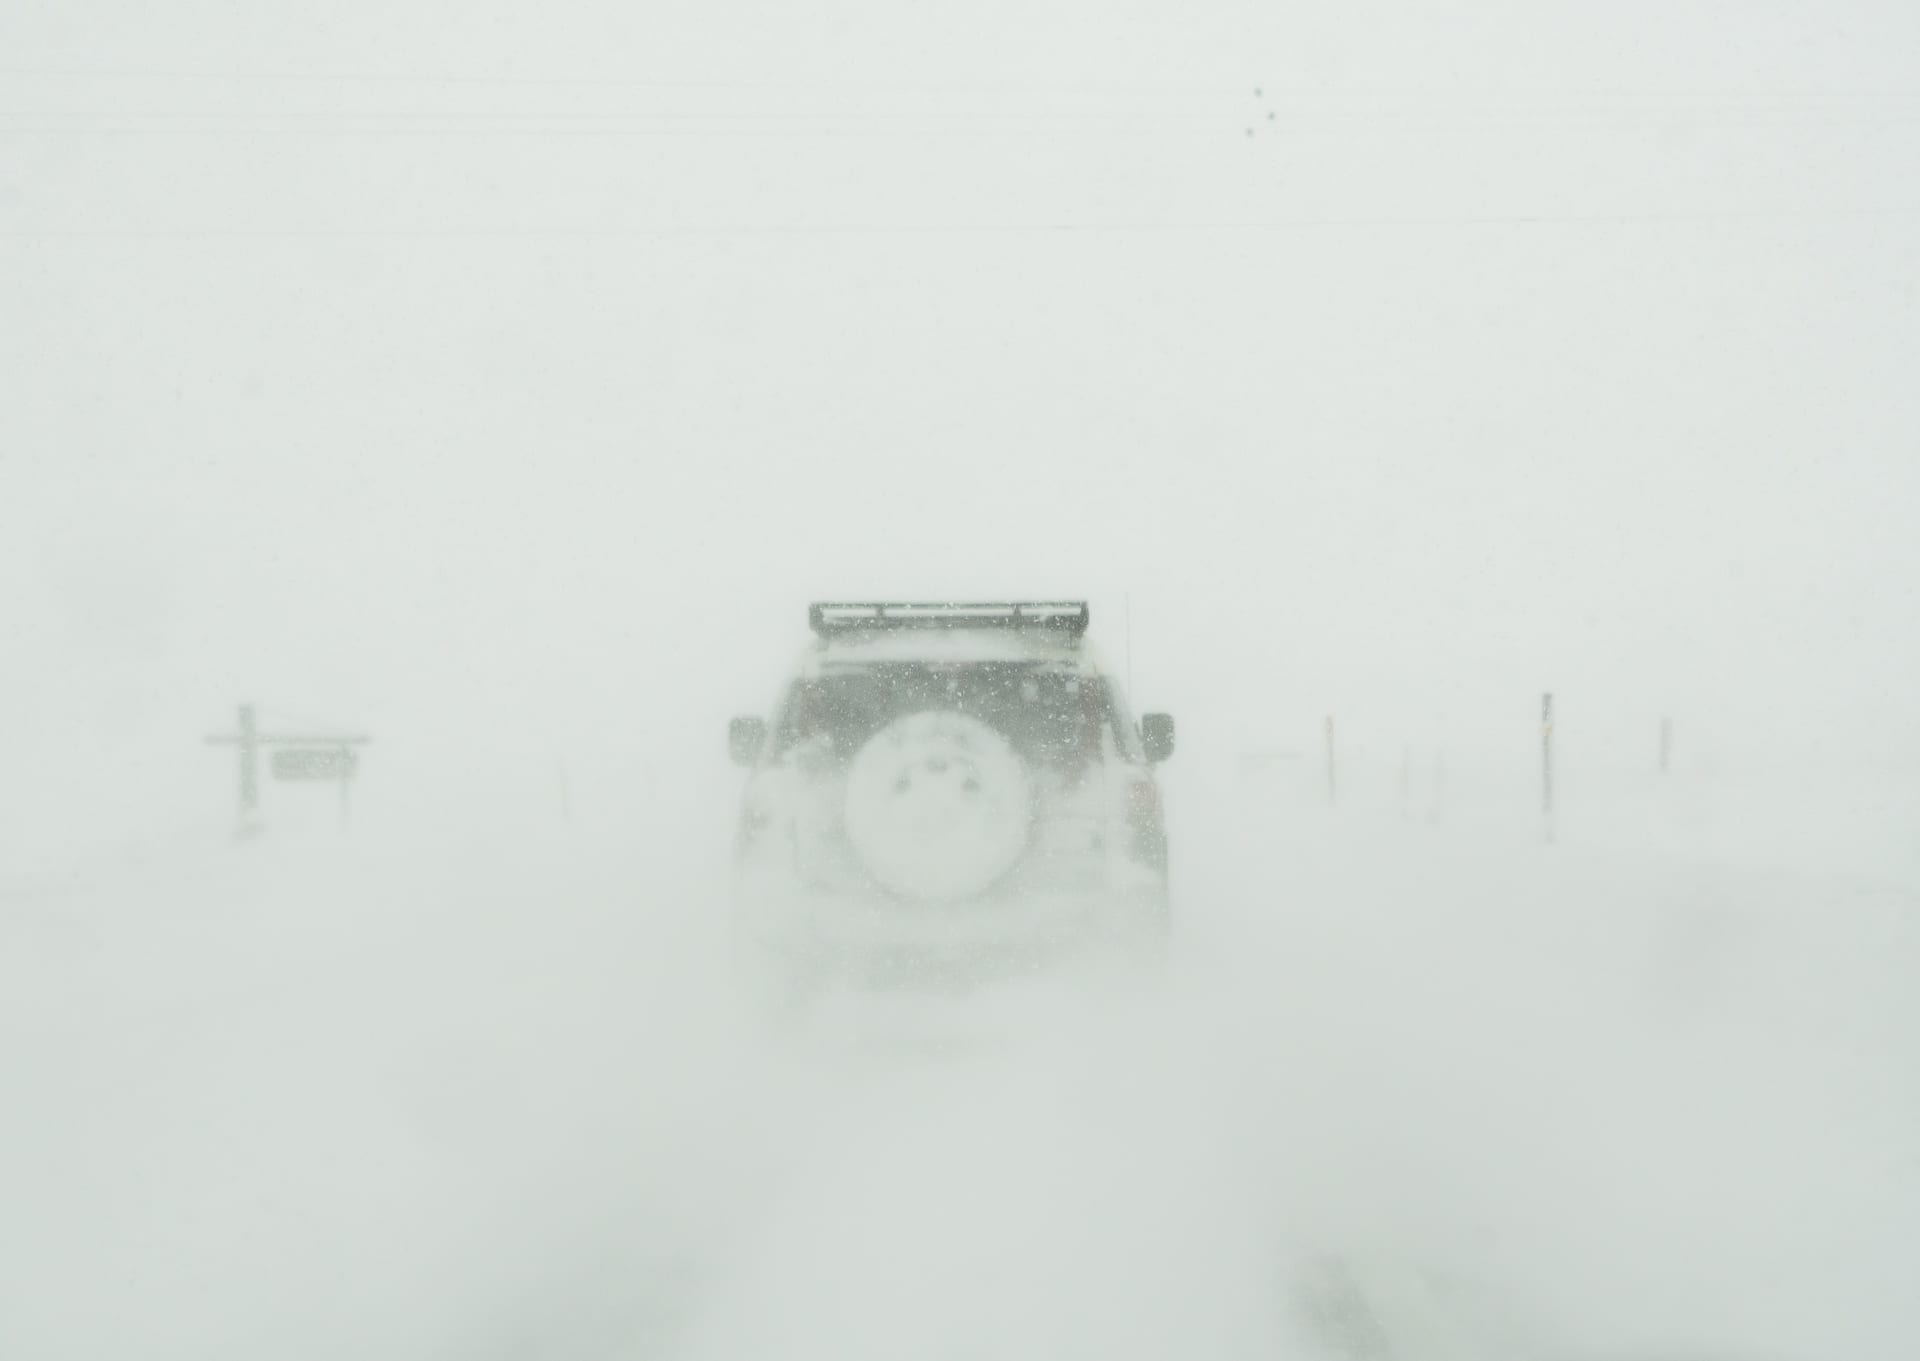 Ground blizzard driving with car in front.